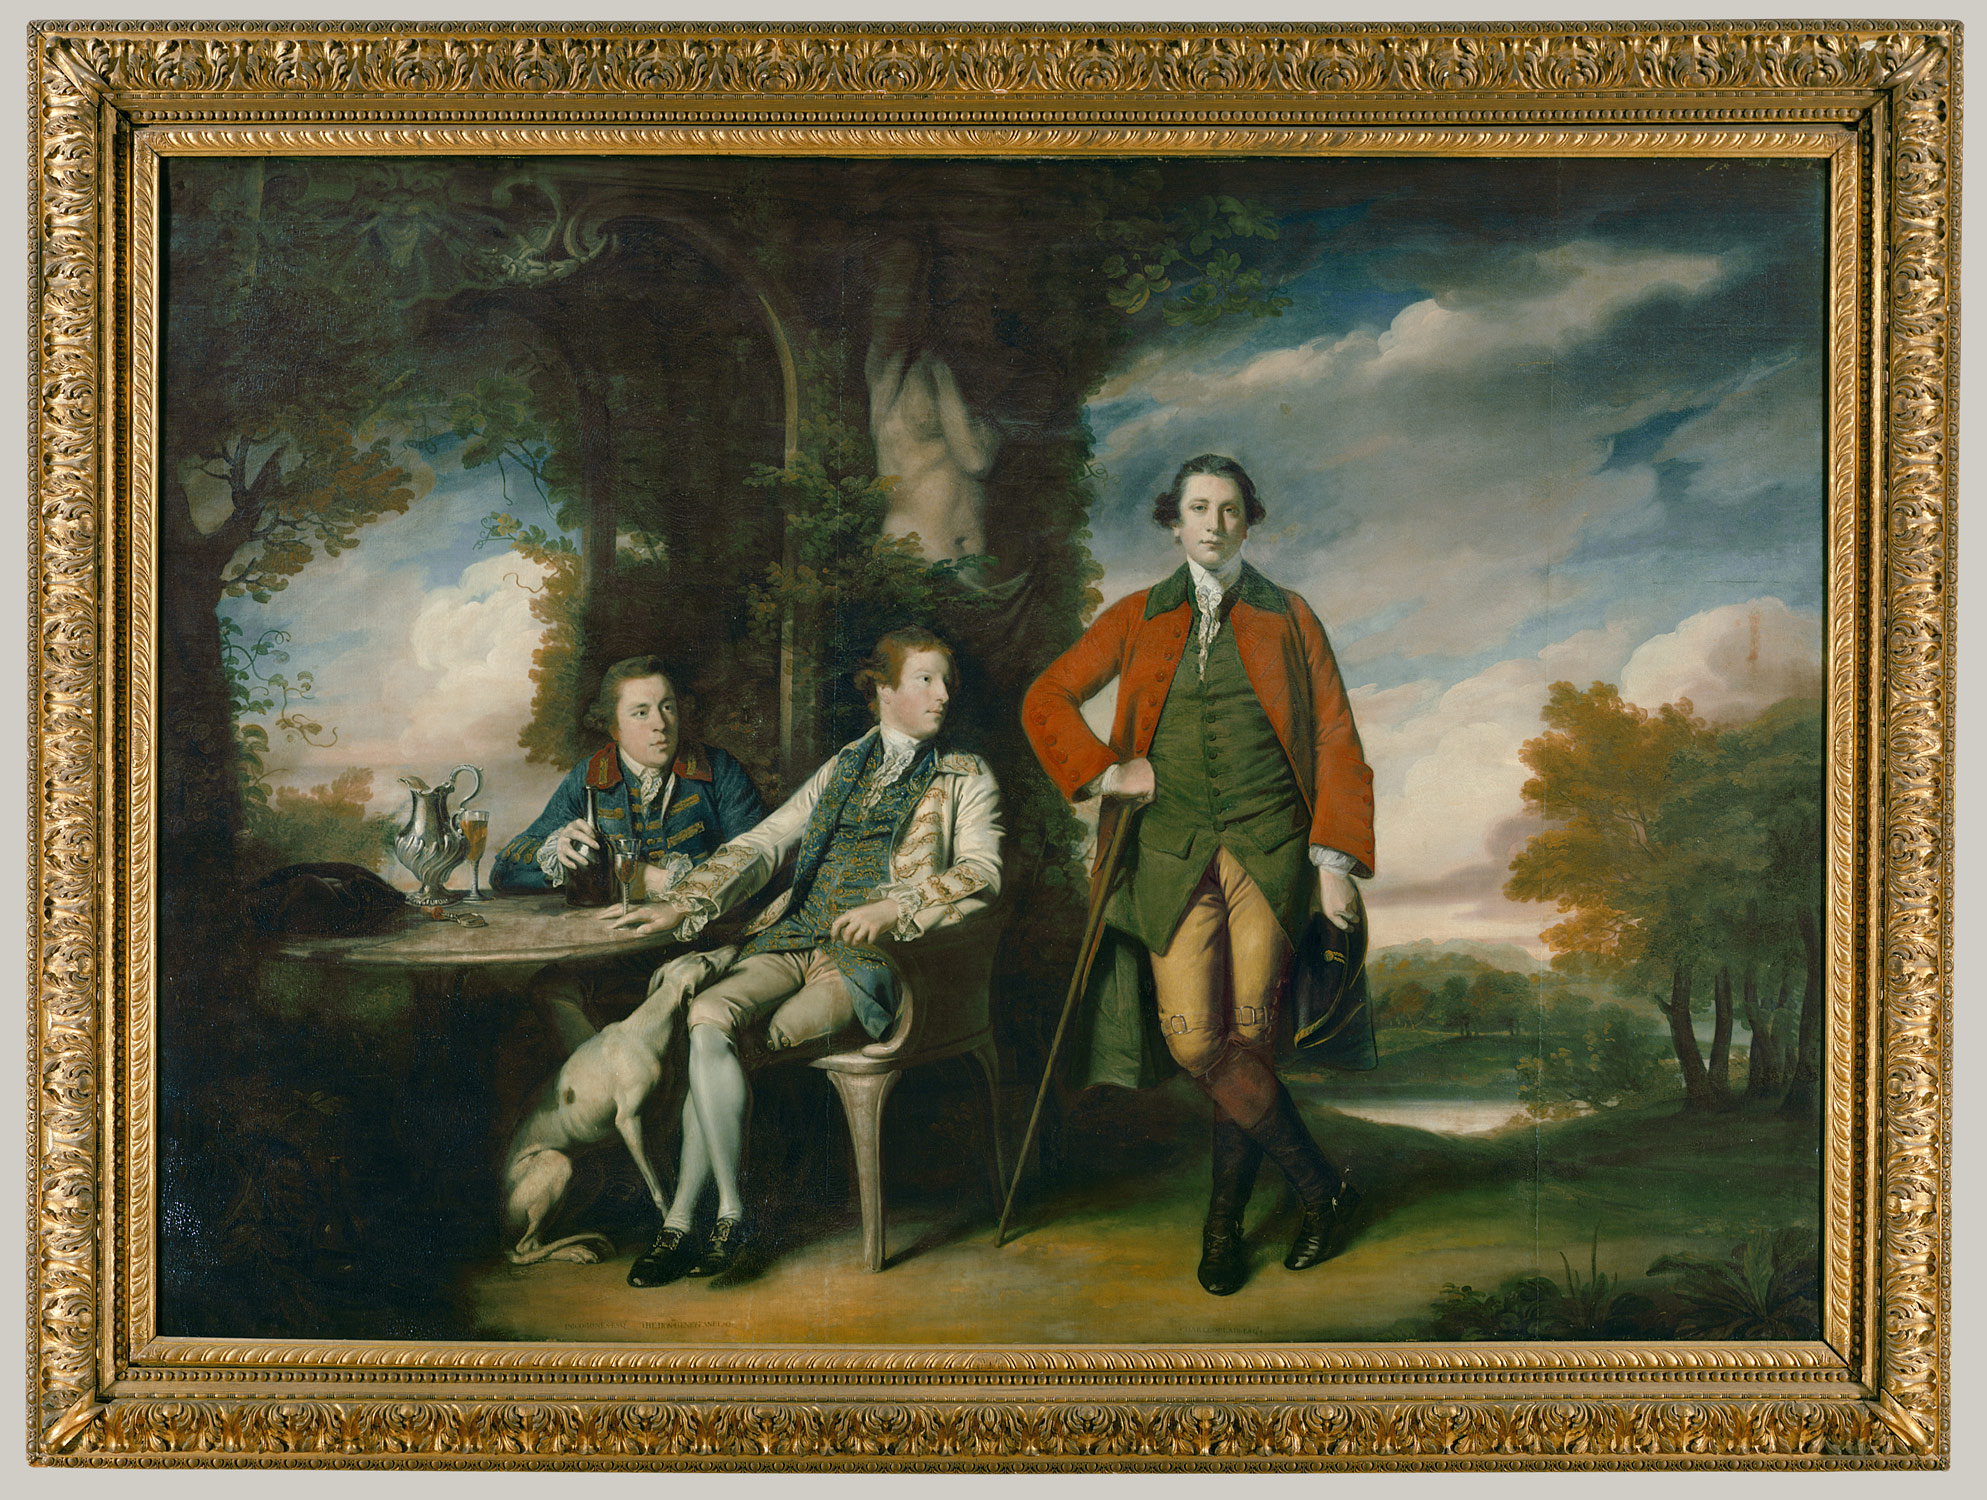 The Honorable Henry Fane (1739-1802) with His Guardians, Inigo Jones and Charles Blair